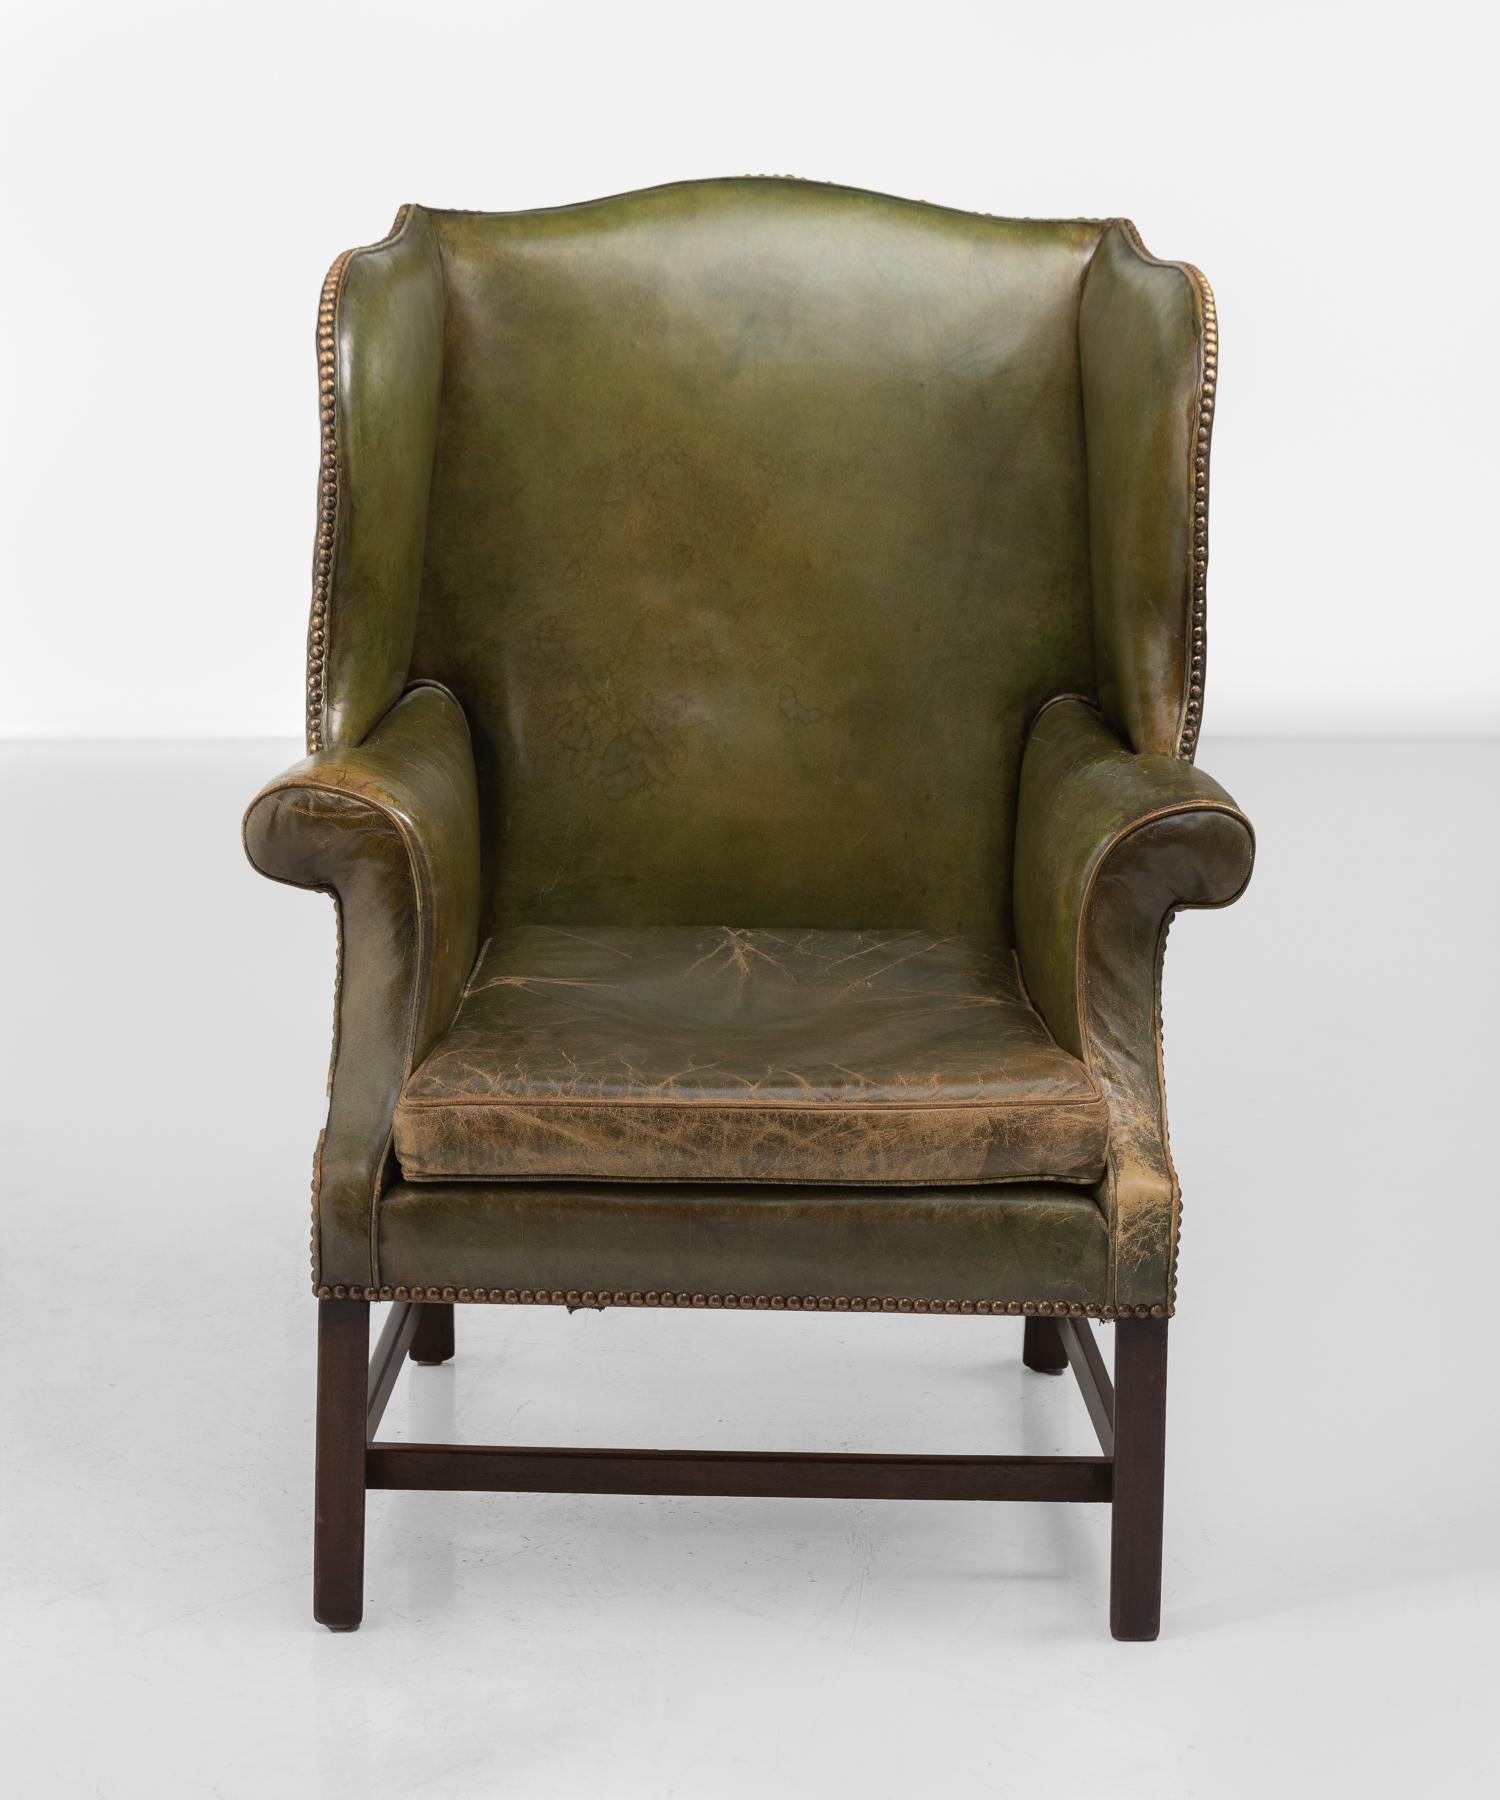 English Green Leather Wingback Chair circa 1920 For Sale & Green Leather Wingback Chair circa 1920 For Sale at 1stdibs